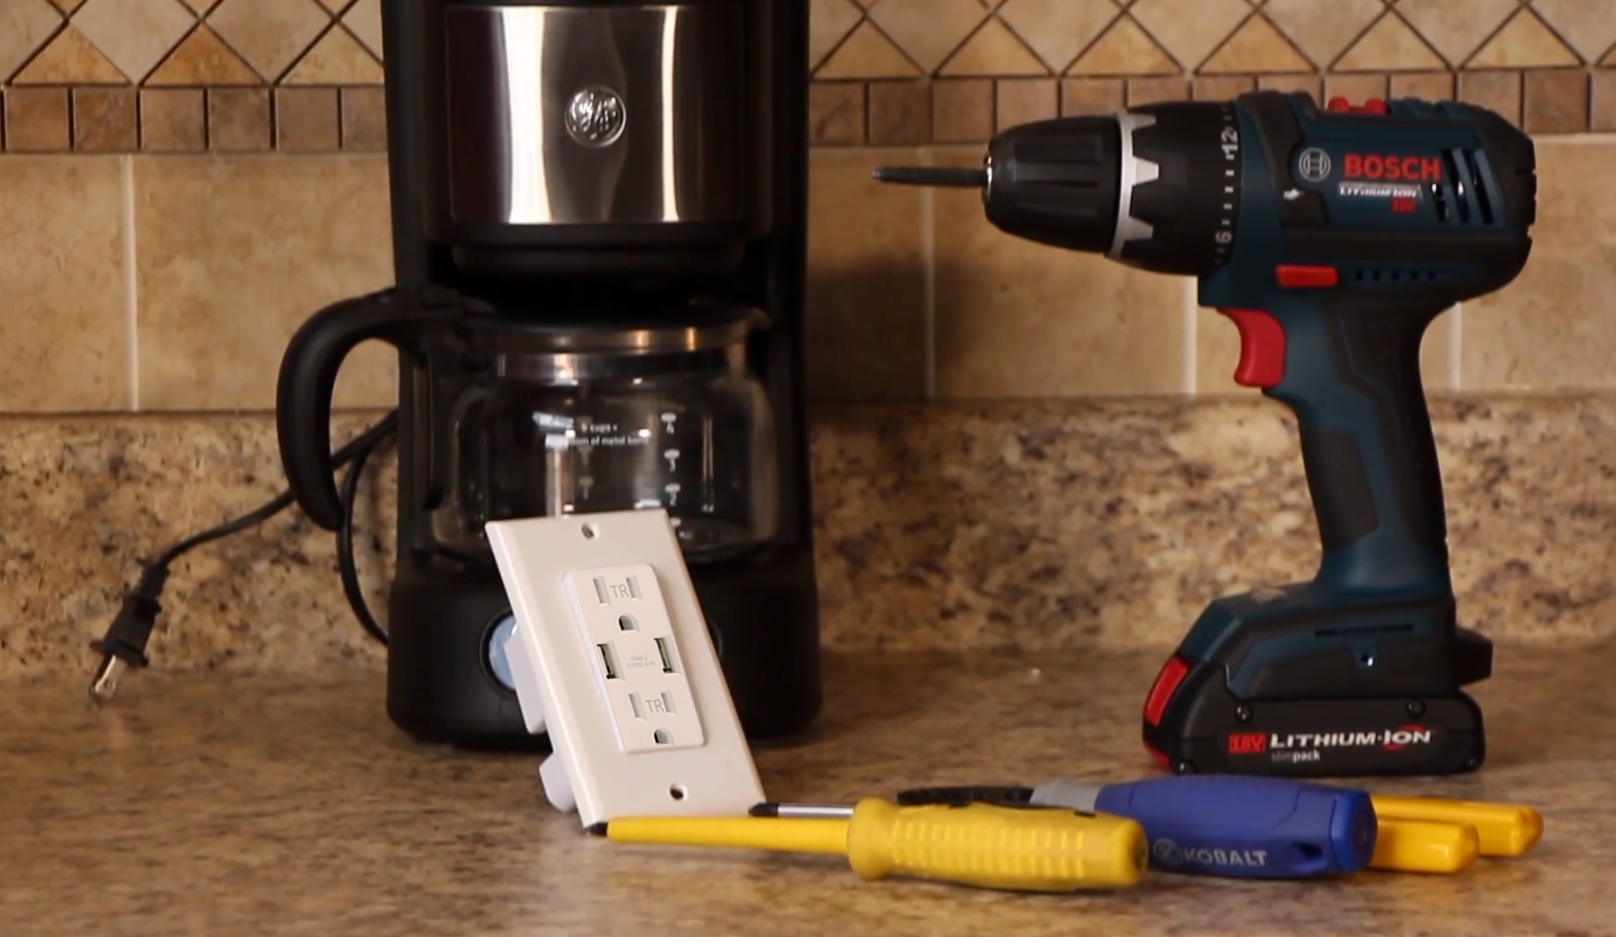 Why You Should Make The Switch To Usb Wall Receptacles